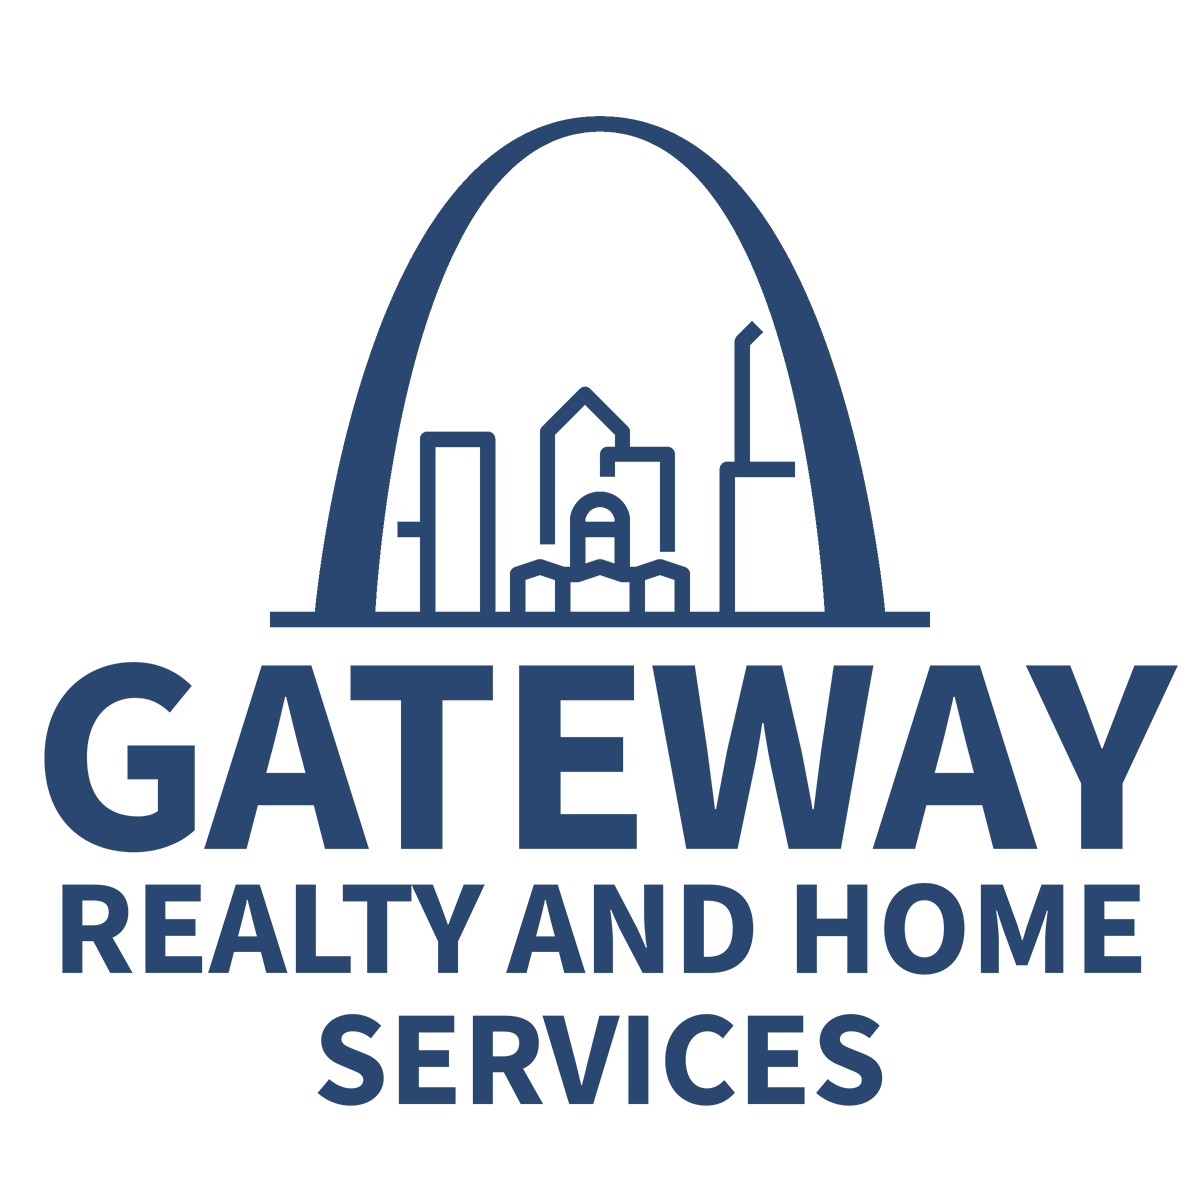 St Louis & St Charles Real Estate Agents – Gateway Realty and Home